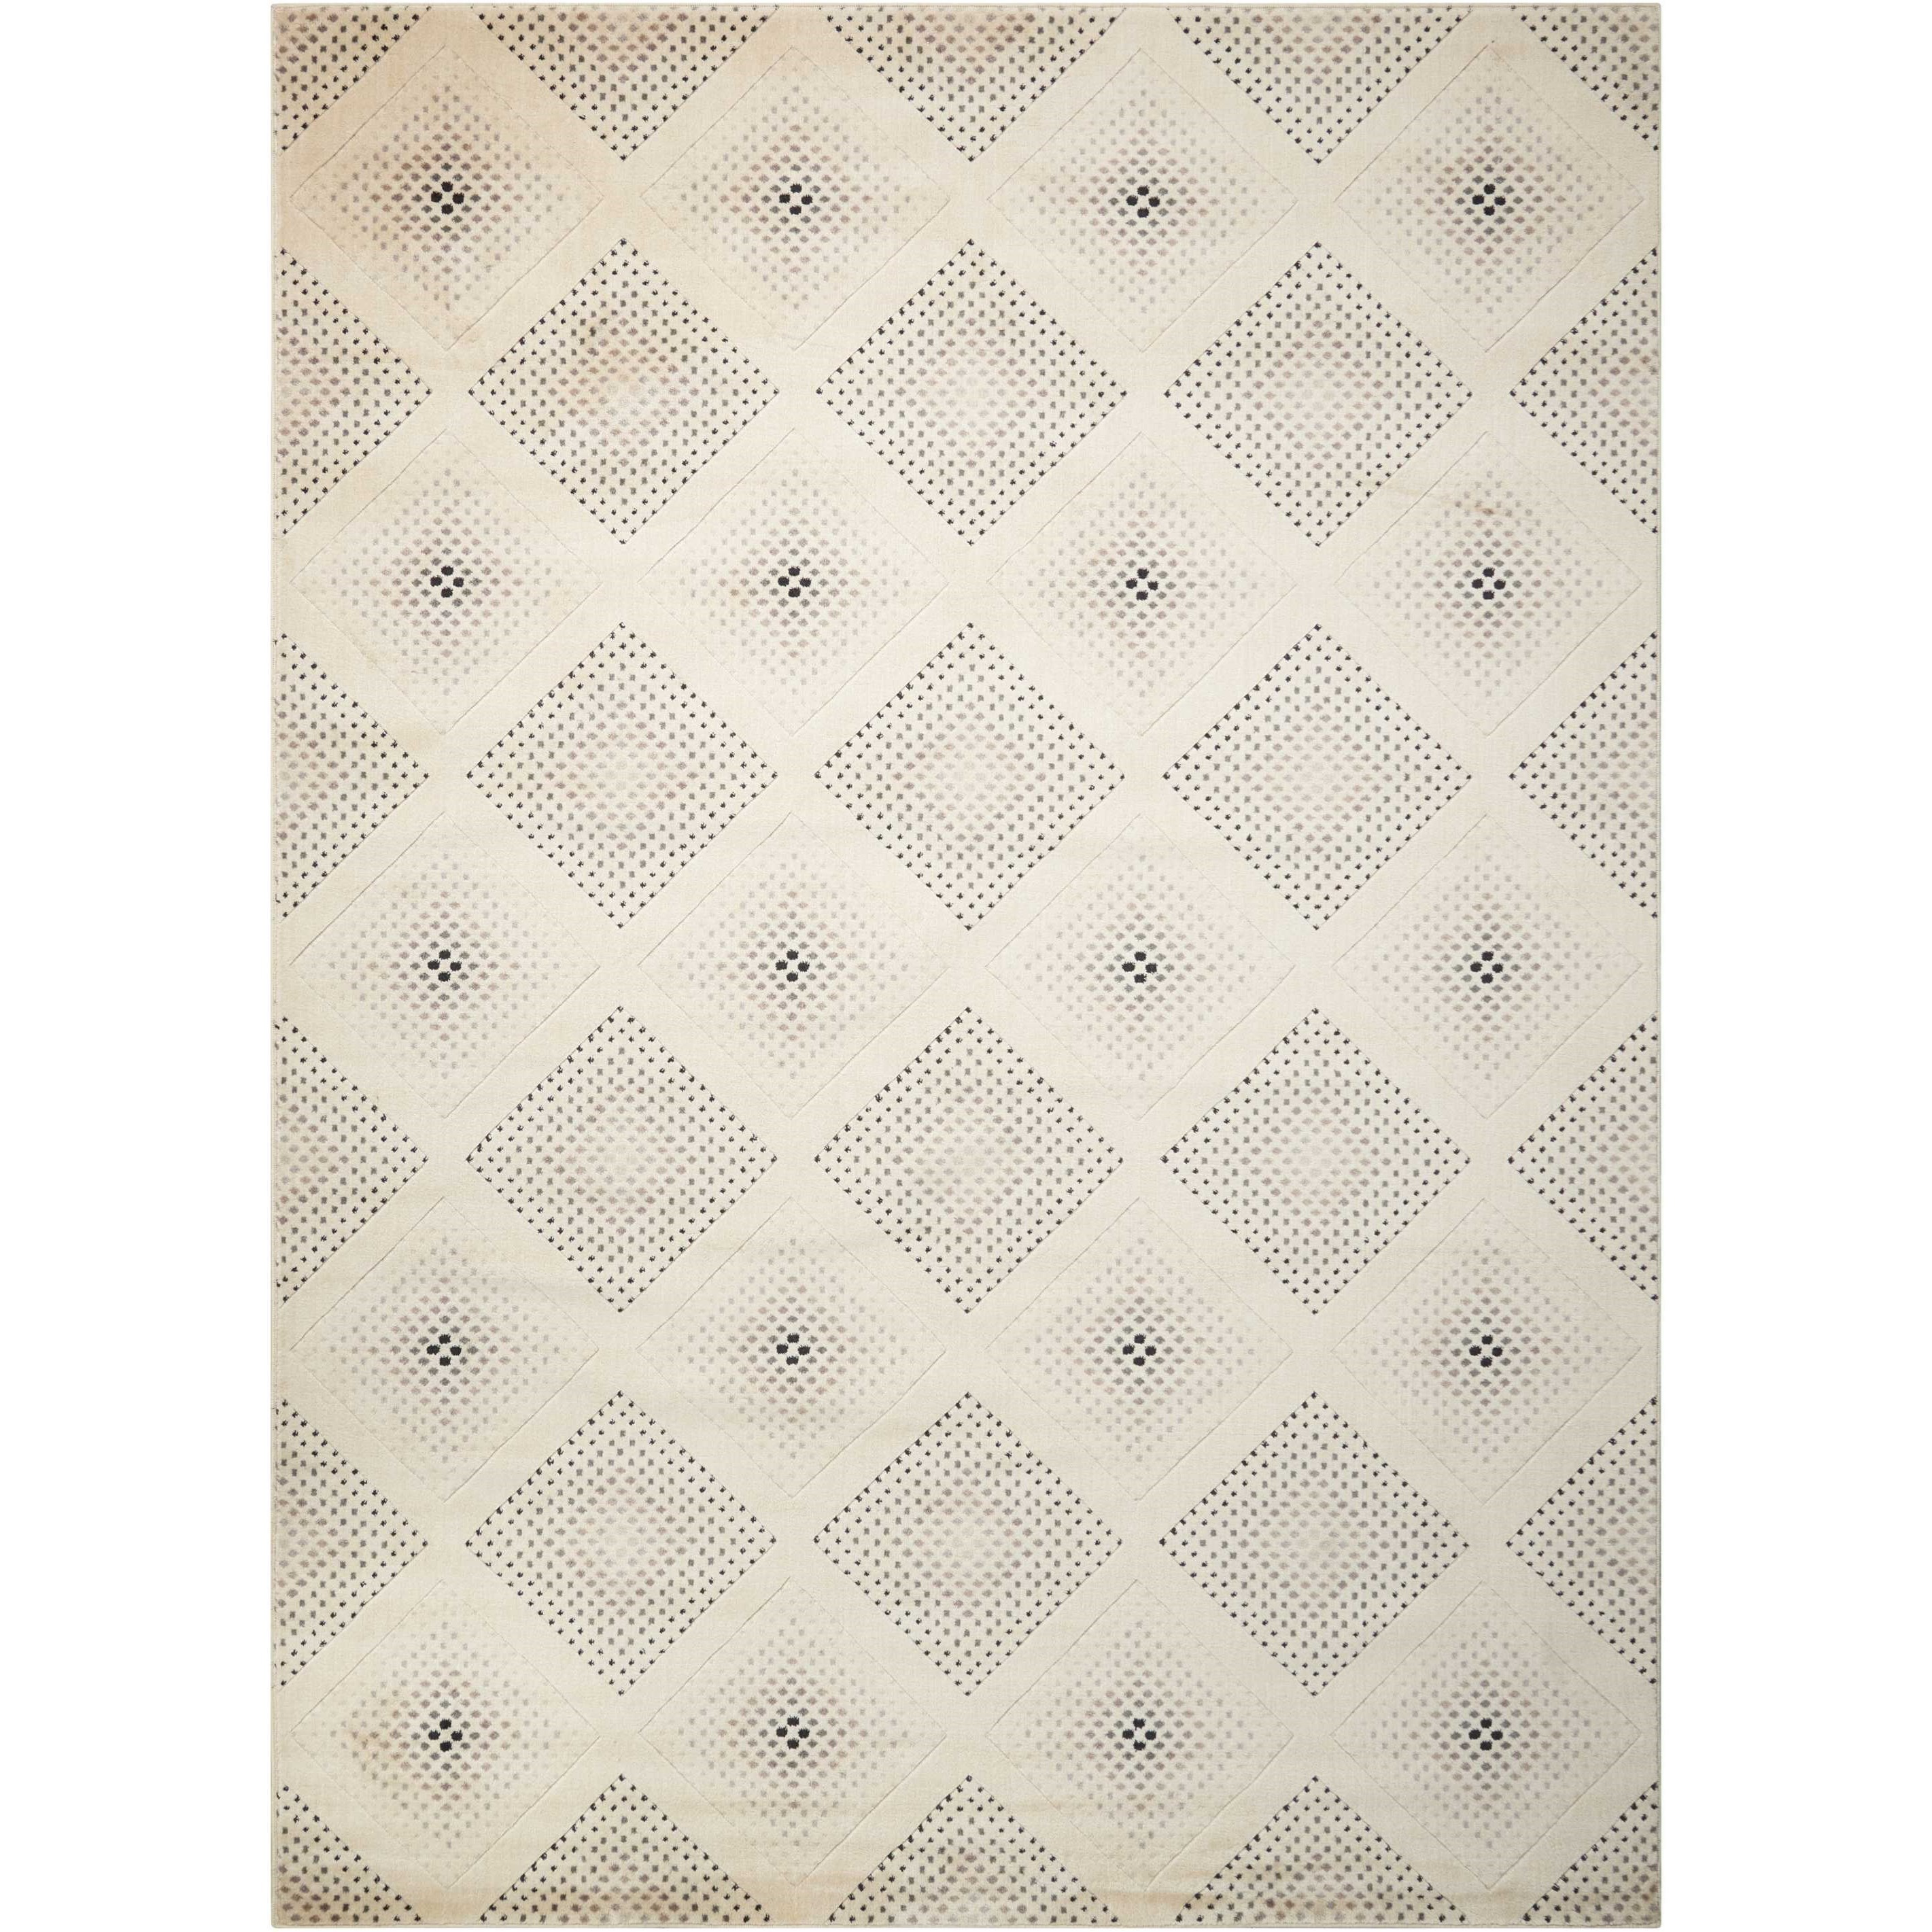 """Utopia 7'9"""" x 10'10"""" Champagne Rectangle Rug by Nourison at Home Collections Furniture"""